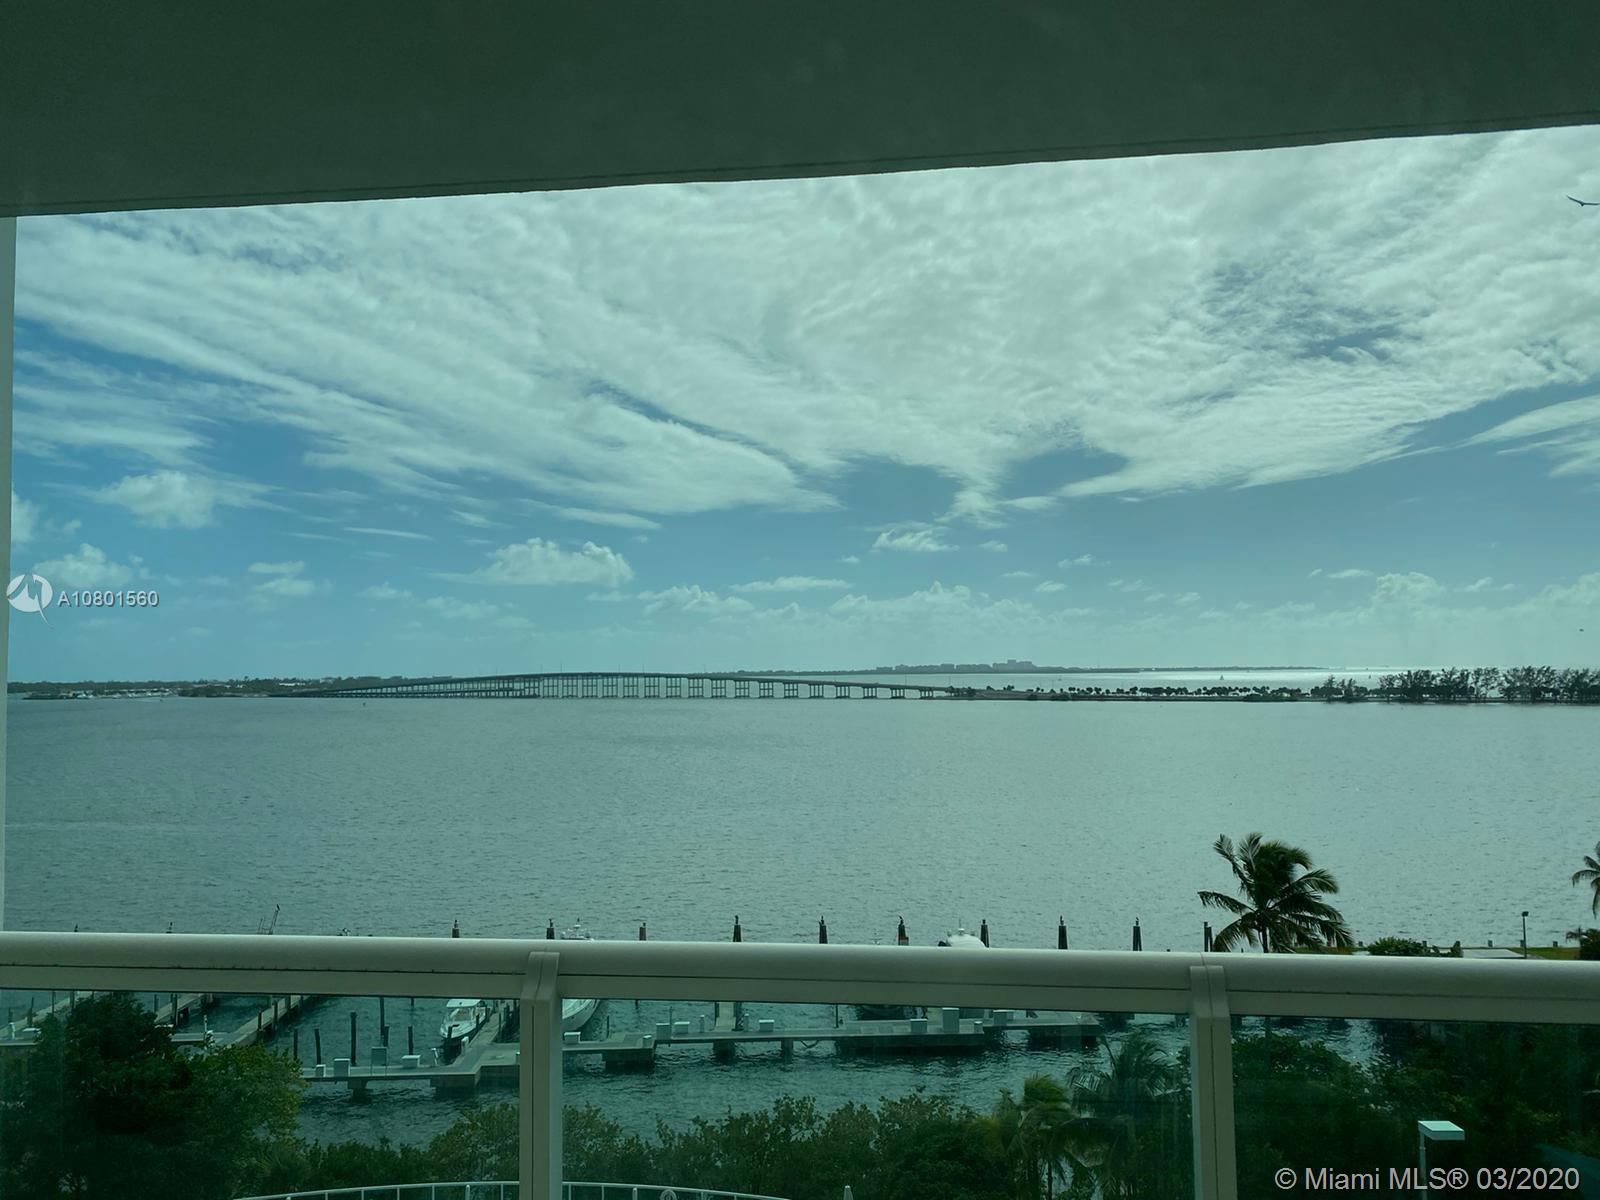 Beautiful 2 bedroom 2.5 bath + Den, at Santa Maria BEST BUILDING ON BRICKELL AVE. Direct bay views and beautiful city views from both balconies of this flow-through unit. Marble floors throughout with wood floors in bedrooms. Unit comes with 1 parking space. THIS APARTMENT CAN BE EASILY CONVERTED INTO A 3/3